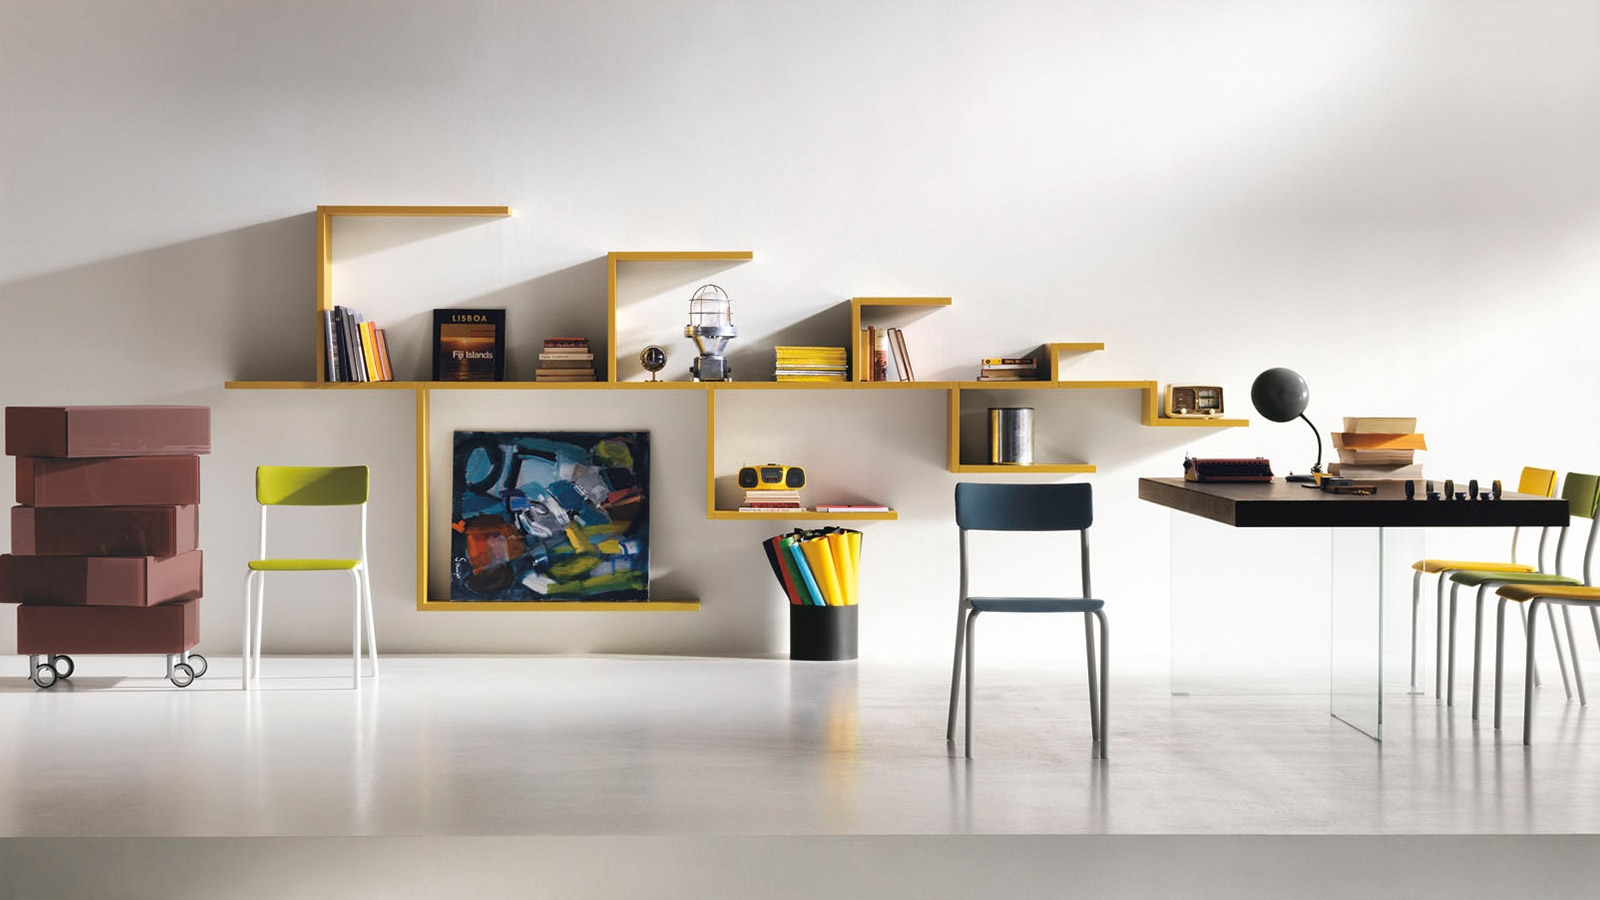 10 Modern Bookshelf Designs To Keep Your Home Organized 10 Pertaining To Modern Bookcases (View 14 of 15)